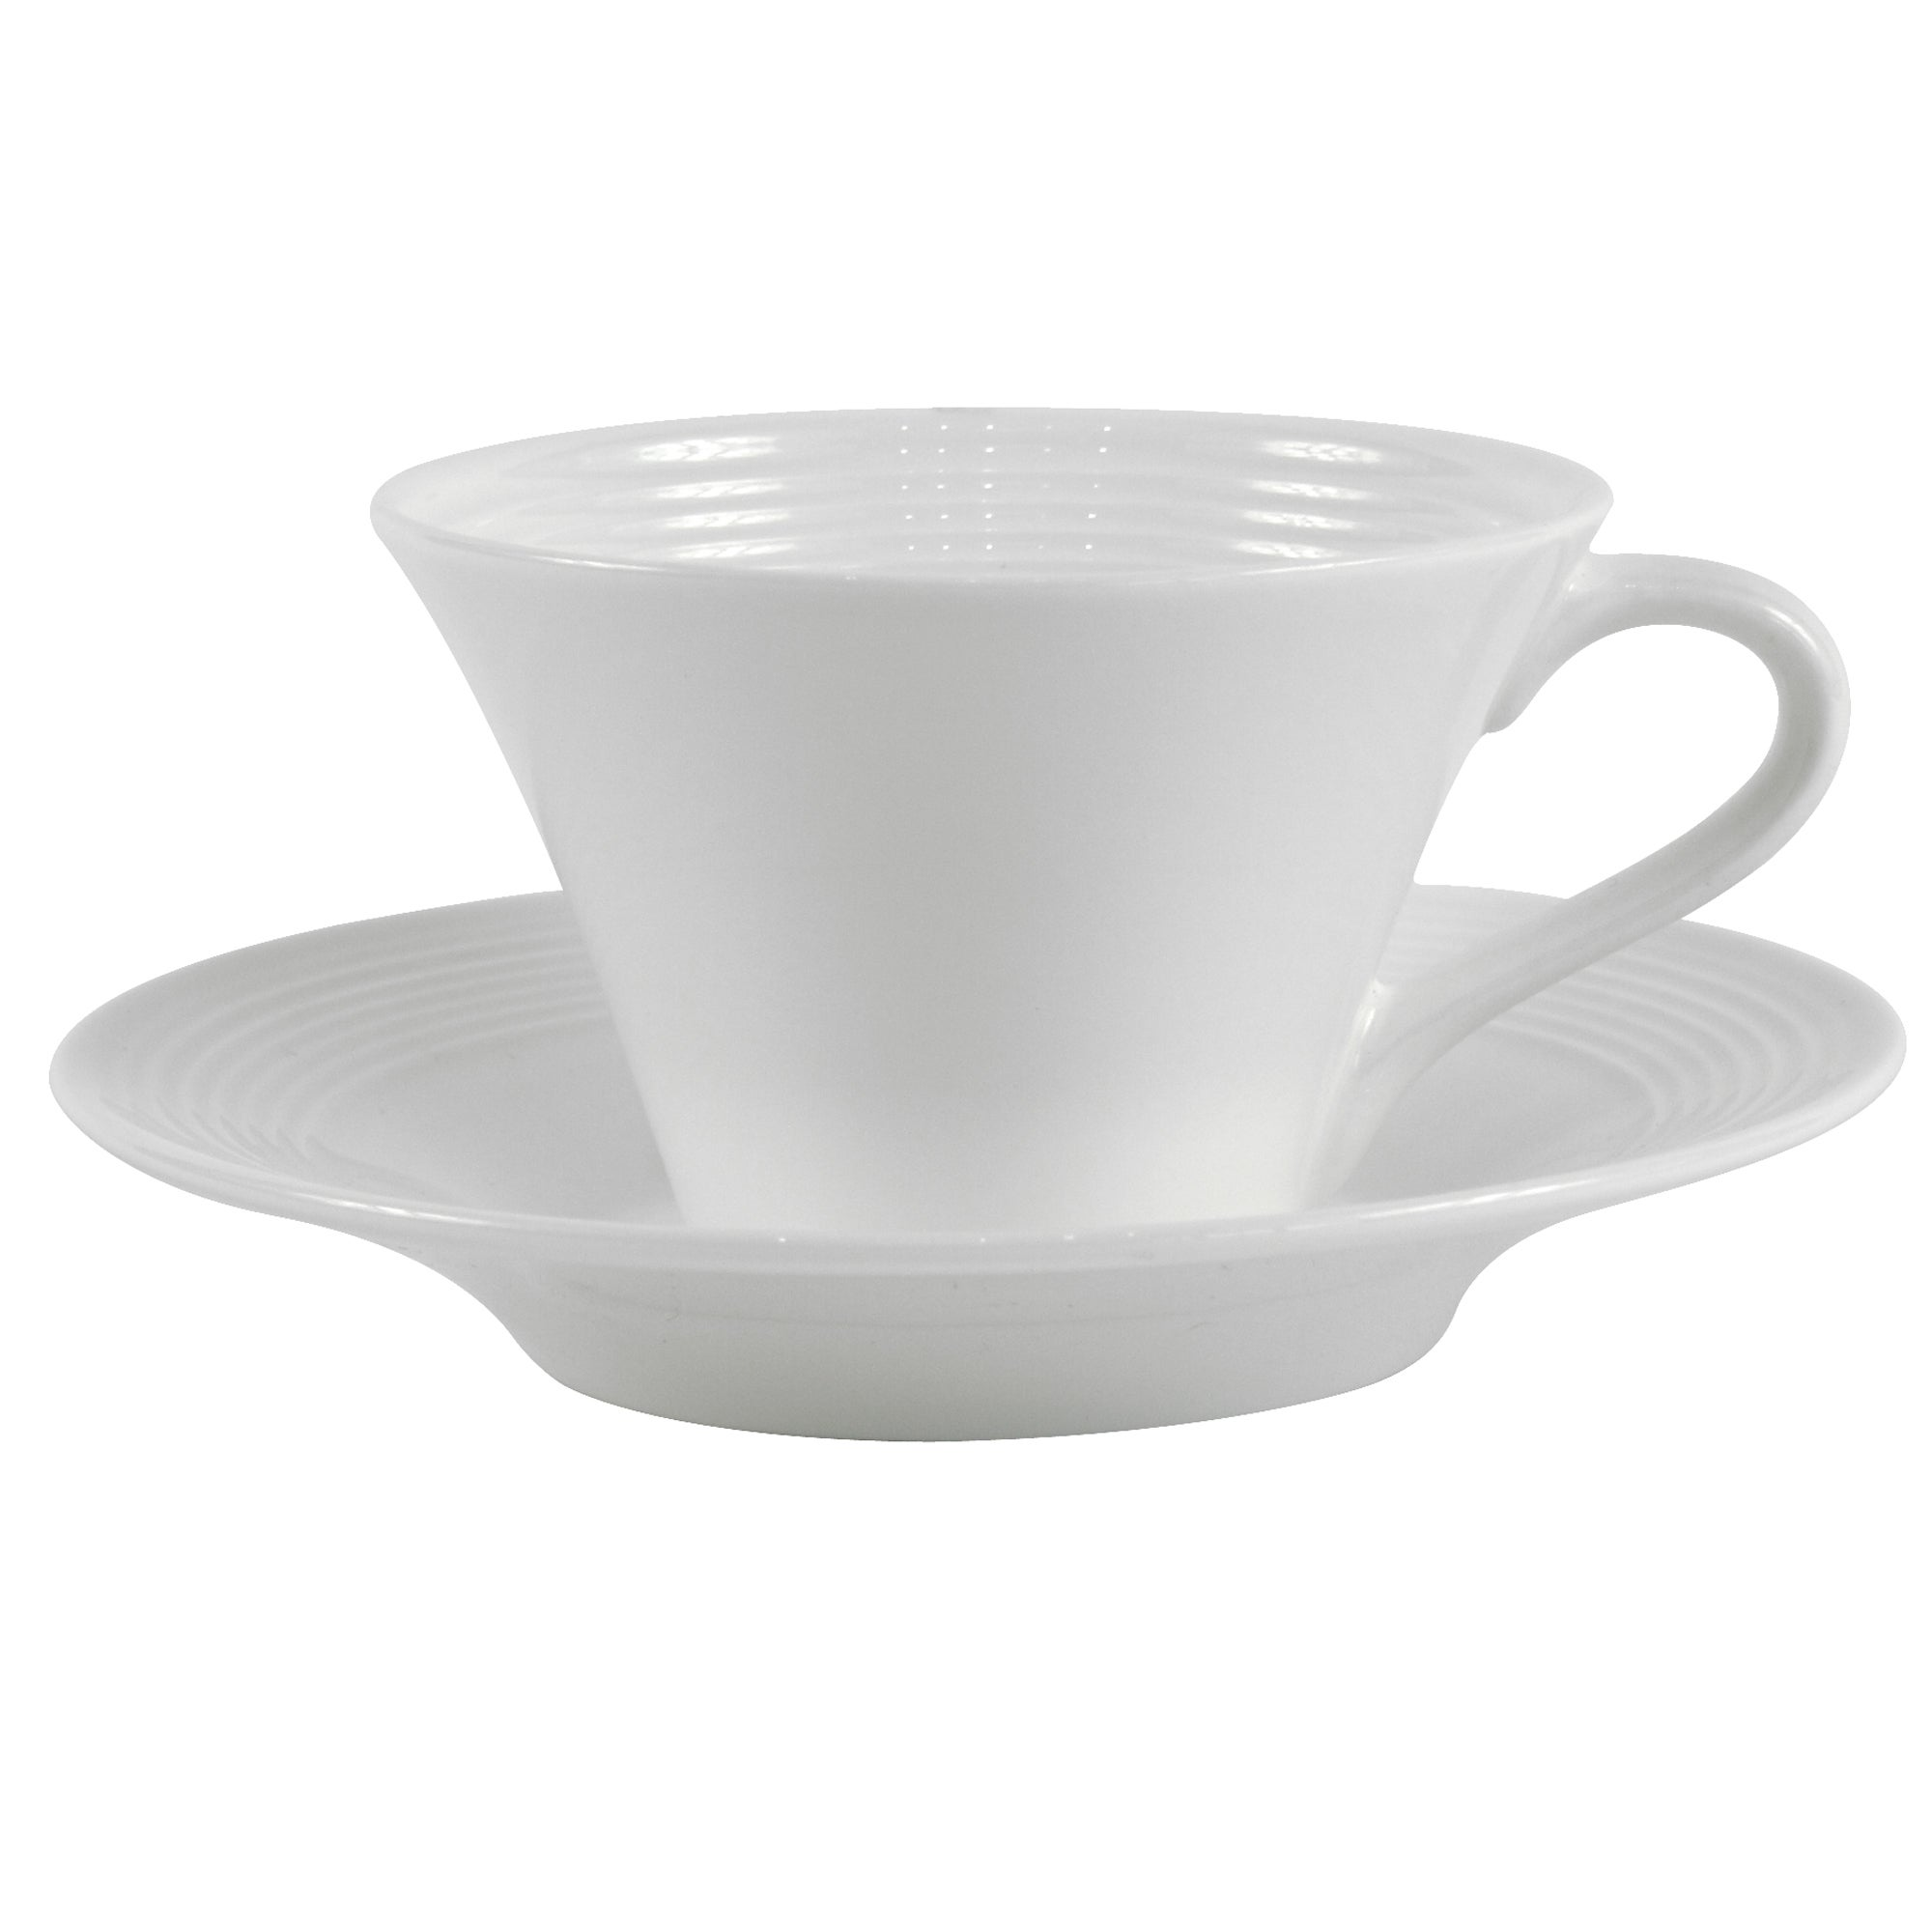 Dorma Windsor Teacup and Saucer